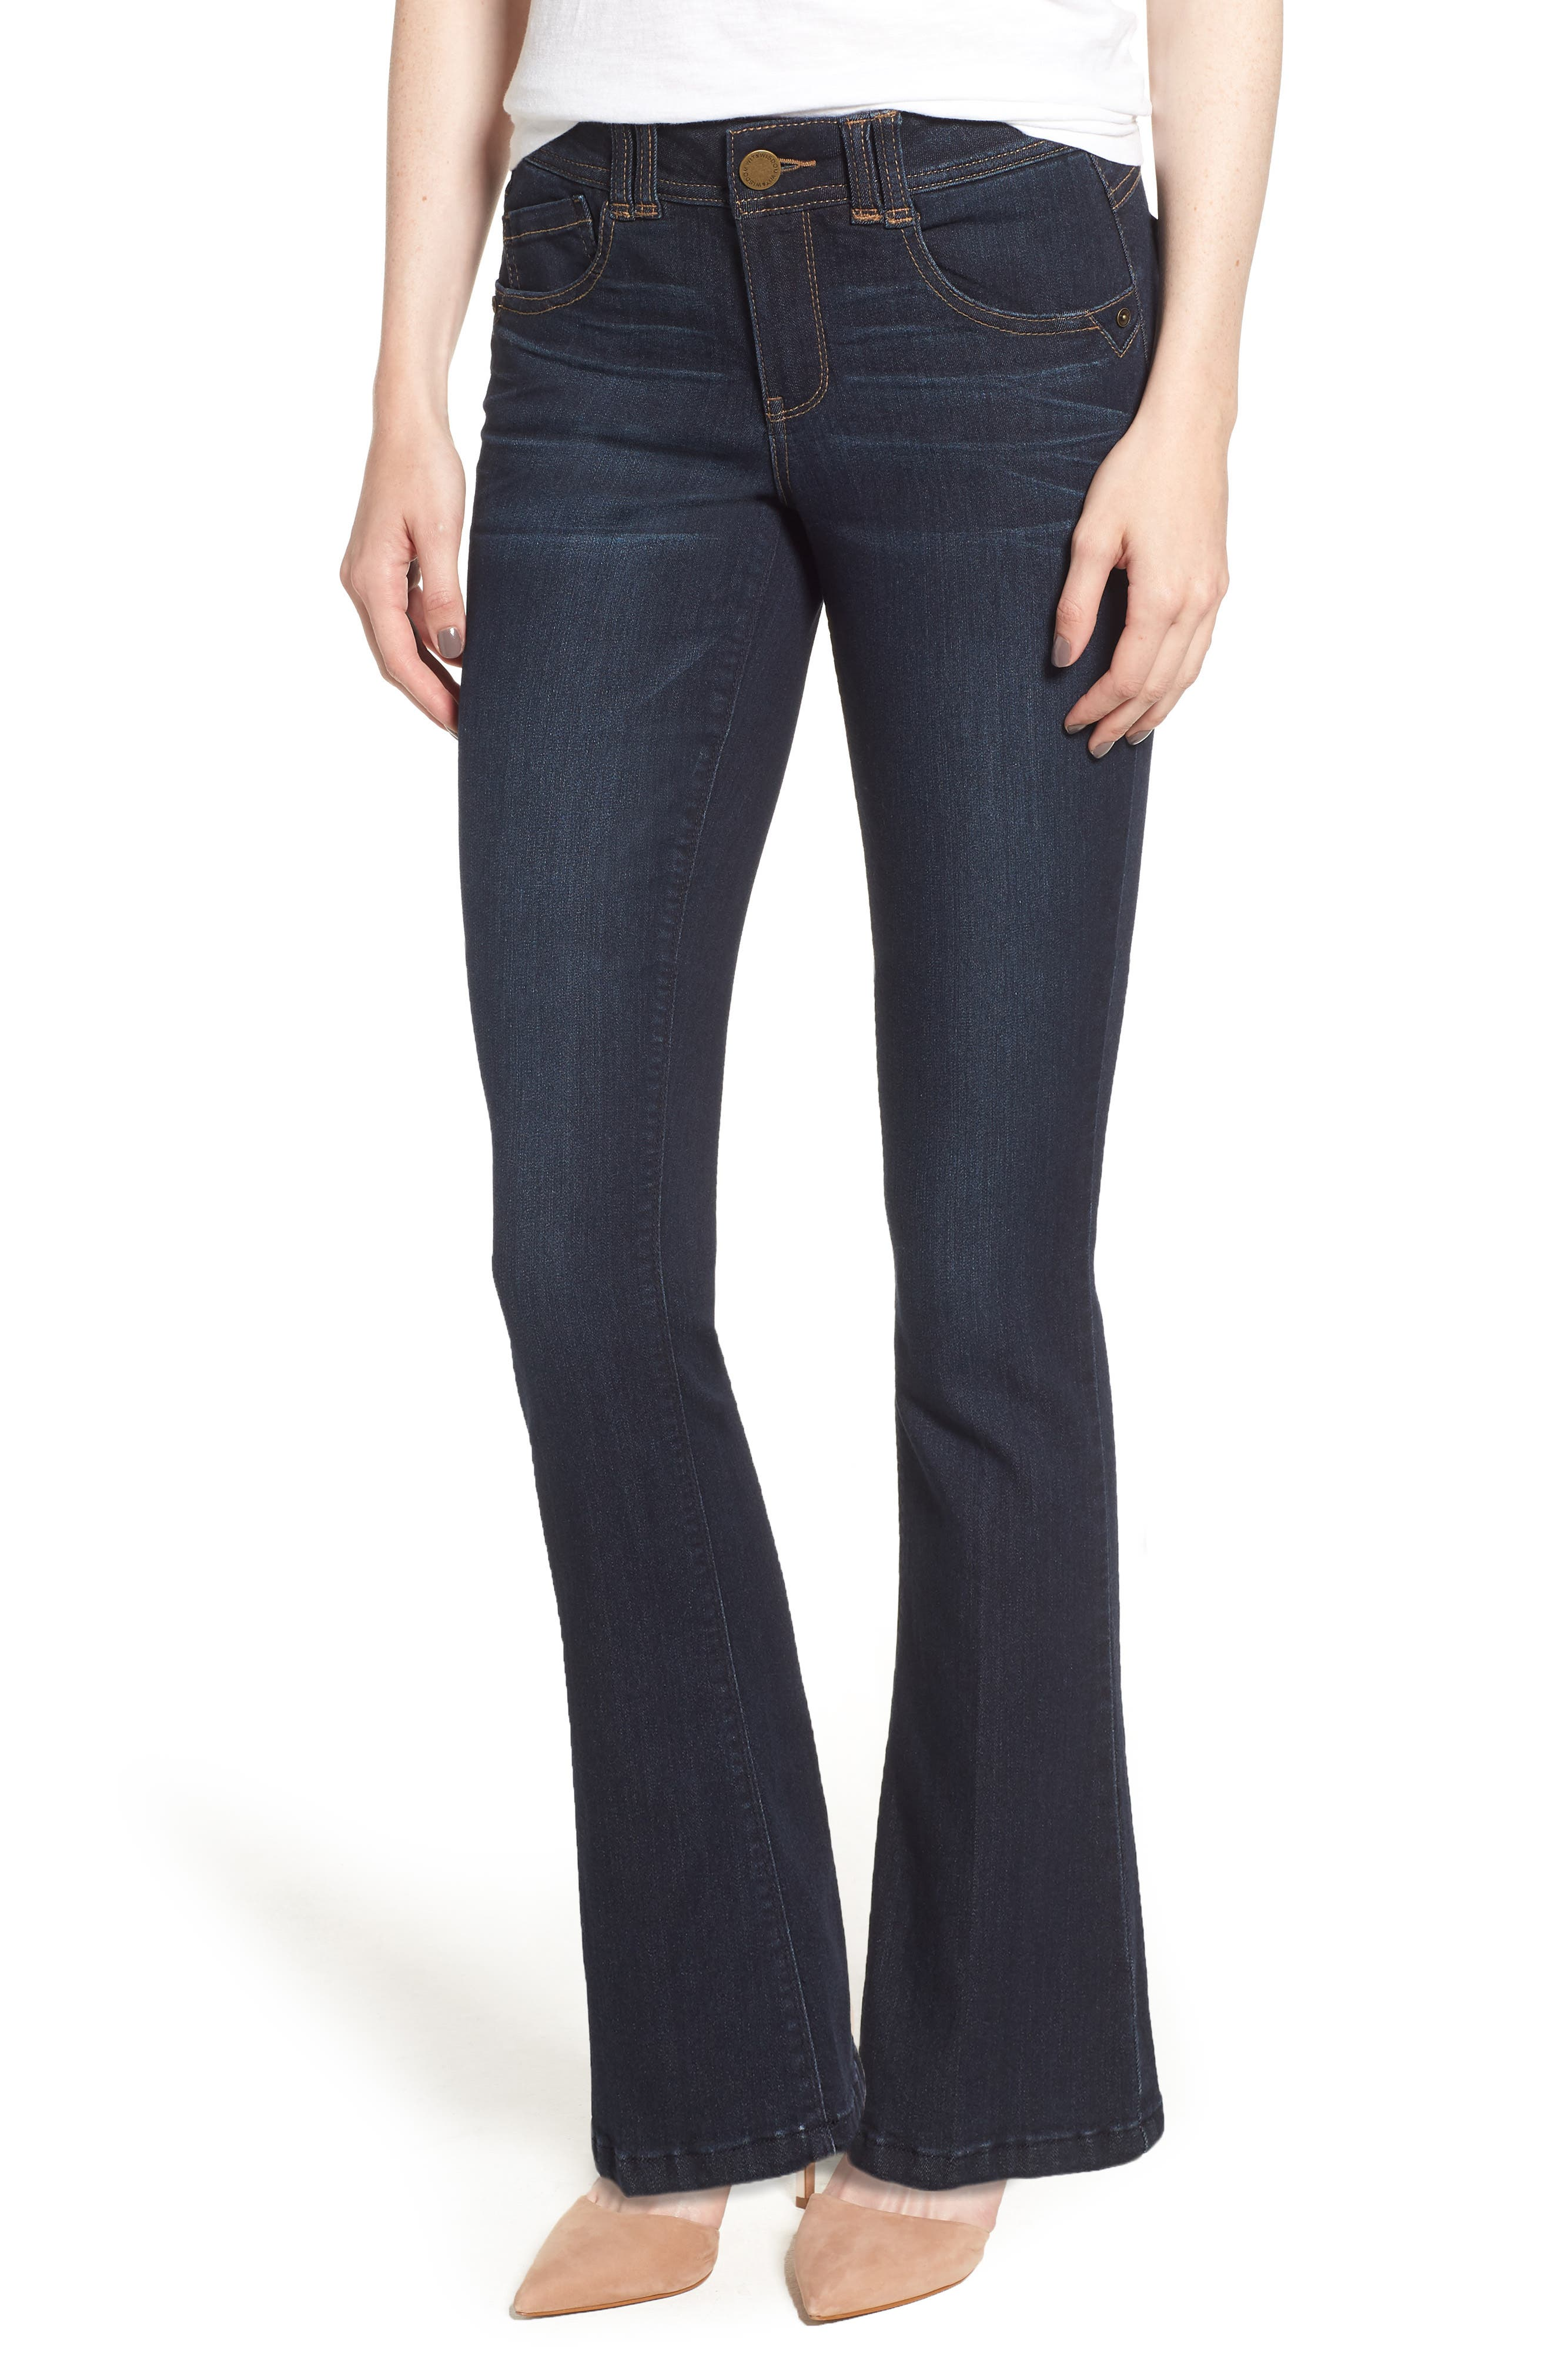 Ab-solution Itty Bitty Bootcut Jeans,                             Main thumbnail 1, color,                             402